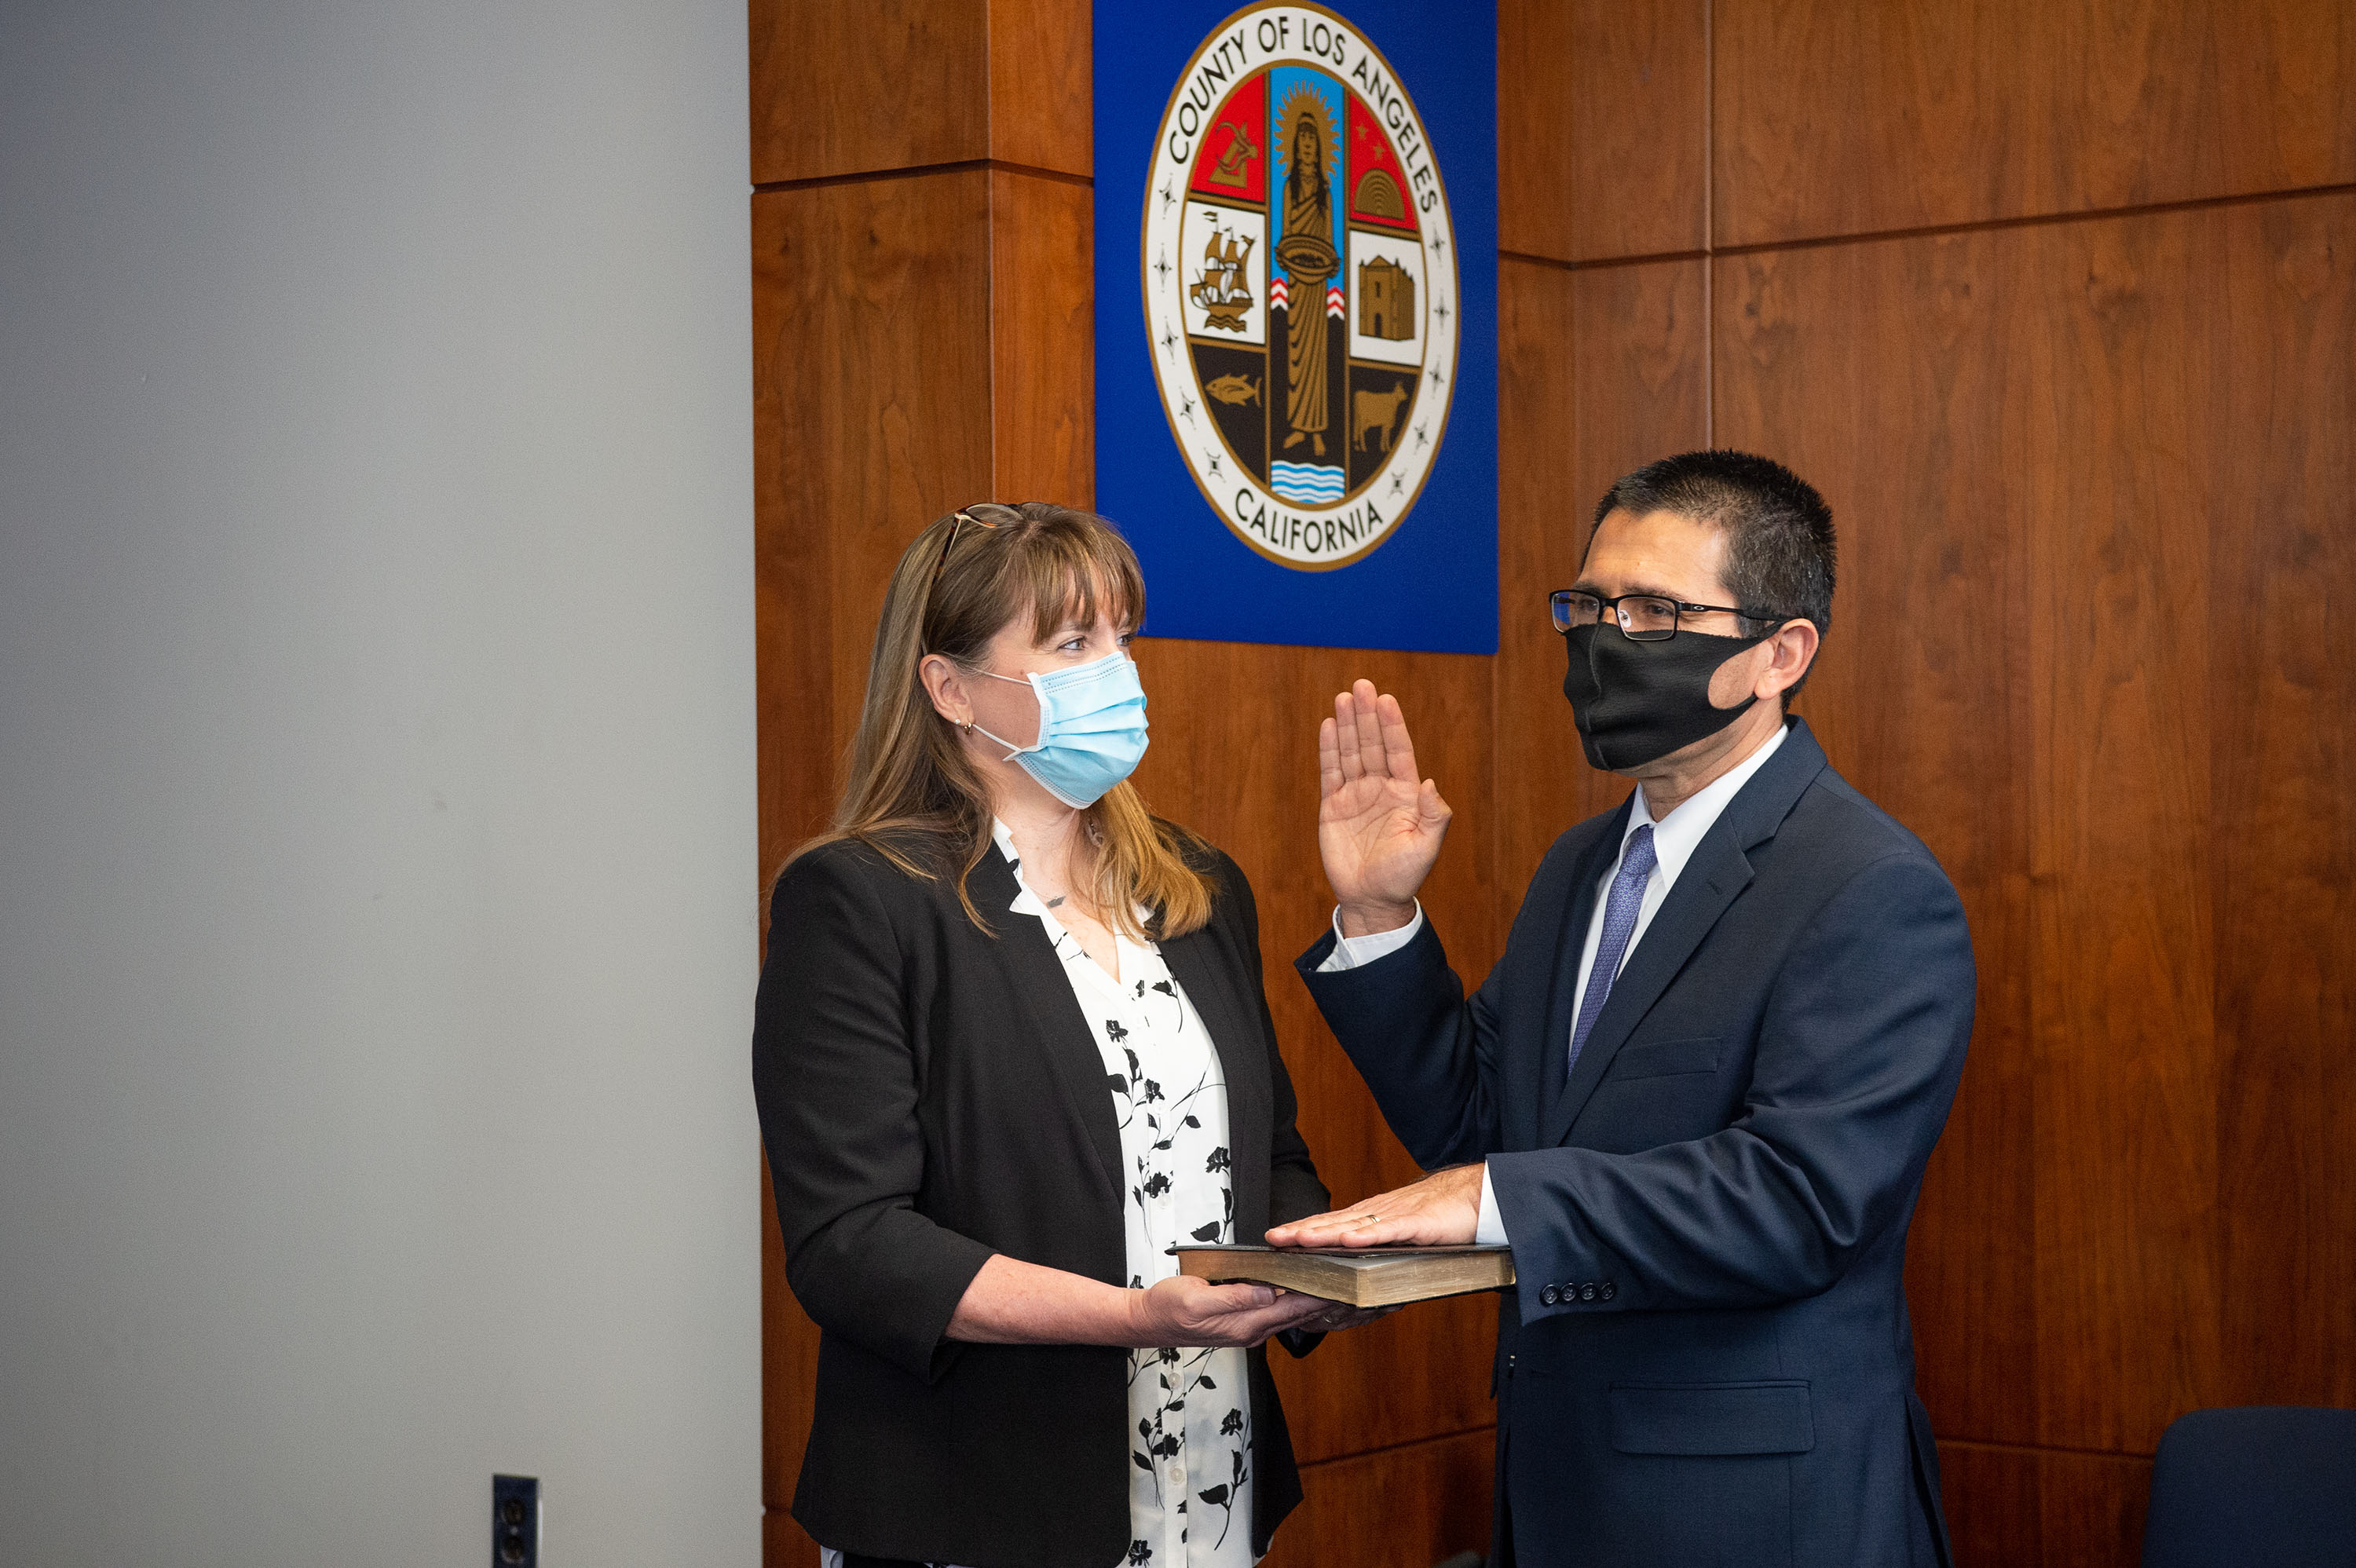 Executive Office<br><b>Jan. 6, 2021 - Rodrigo Castro-Silva County Counsel Oath of Office</b><br>  <i>Photo by Bryan Chan / Board of Supervisors</i>